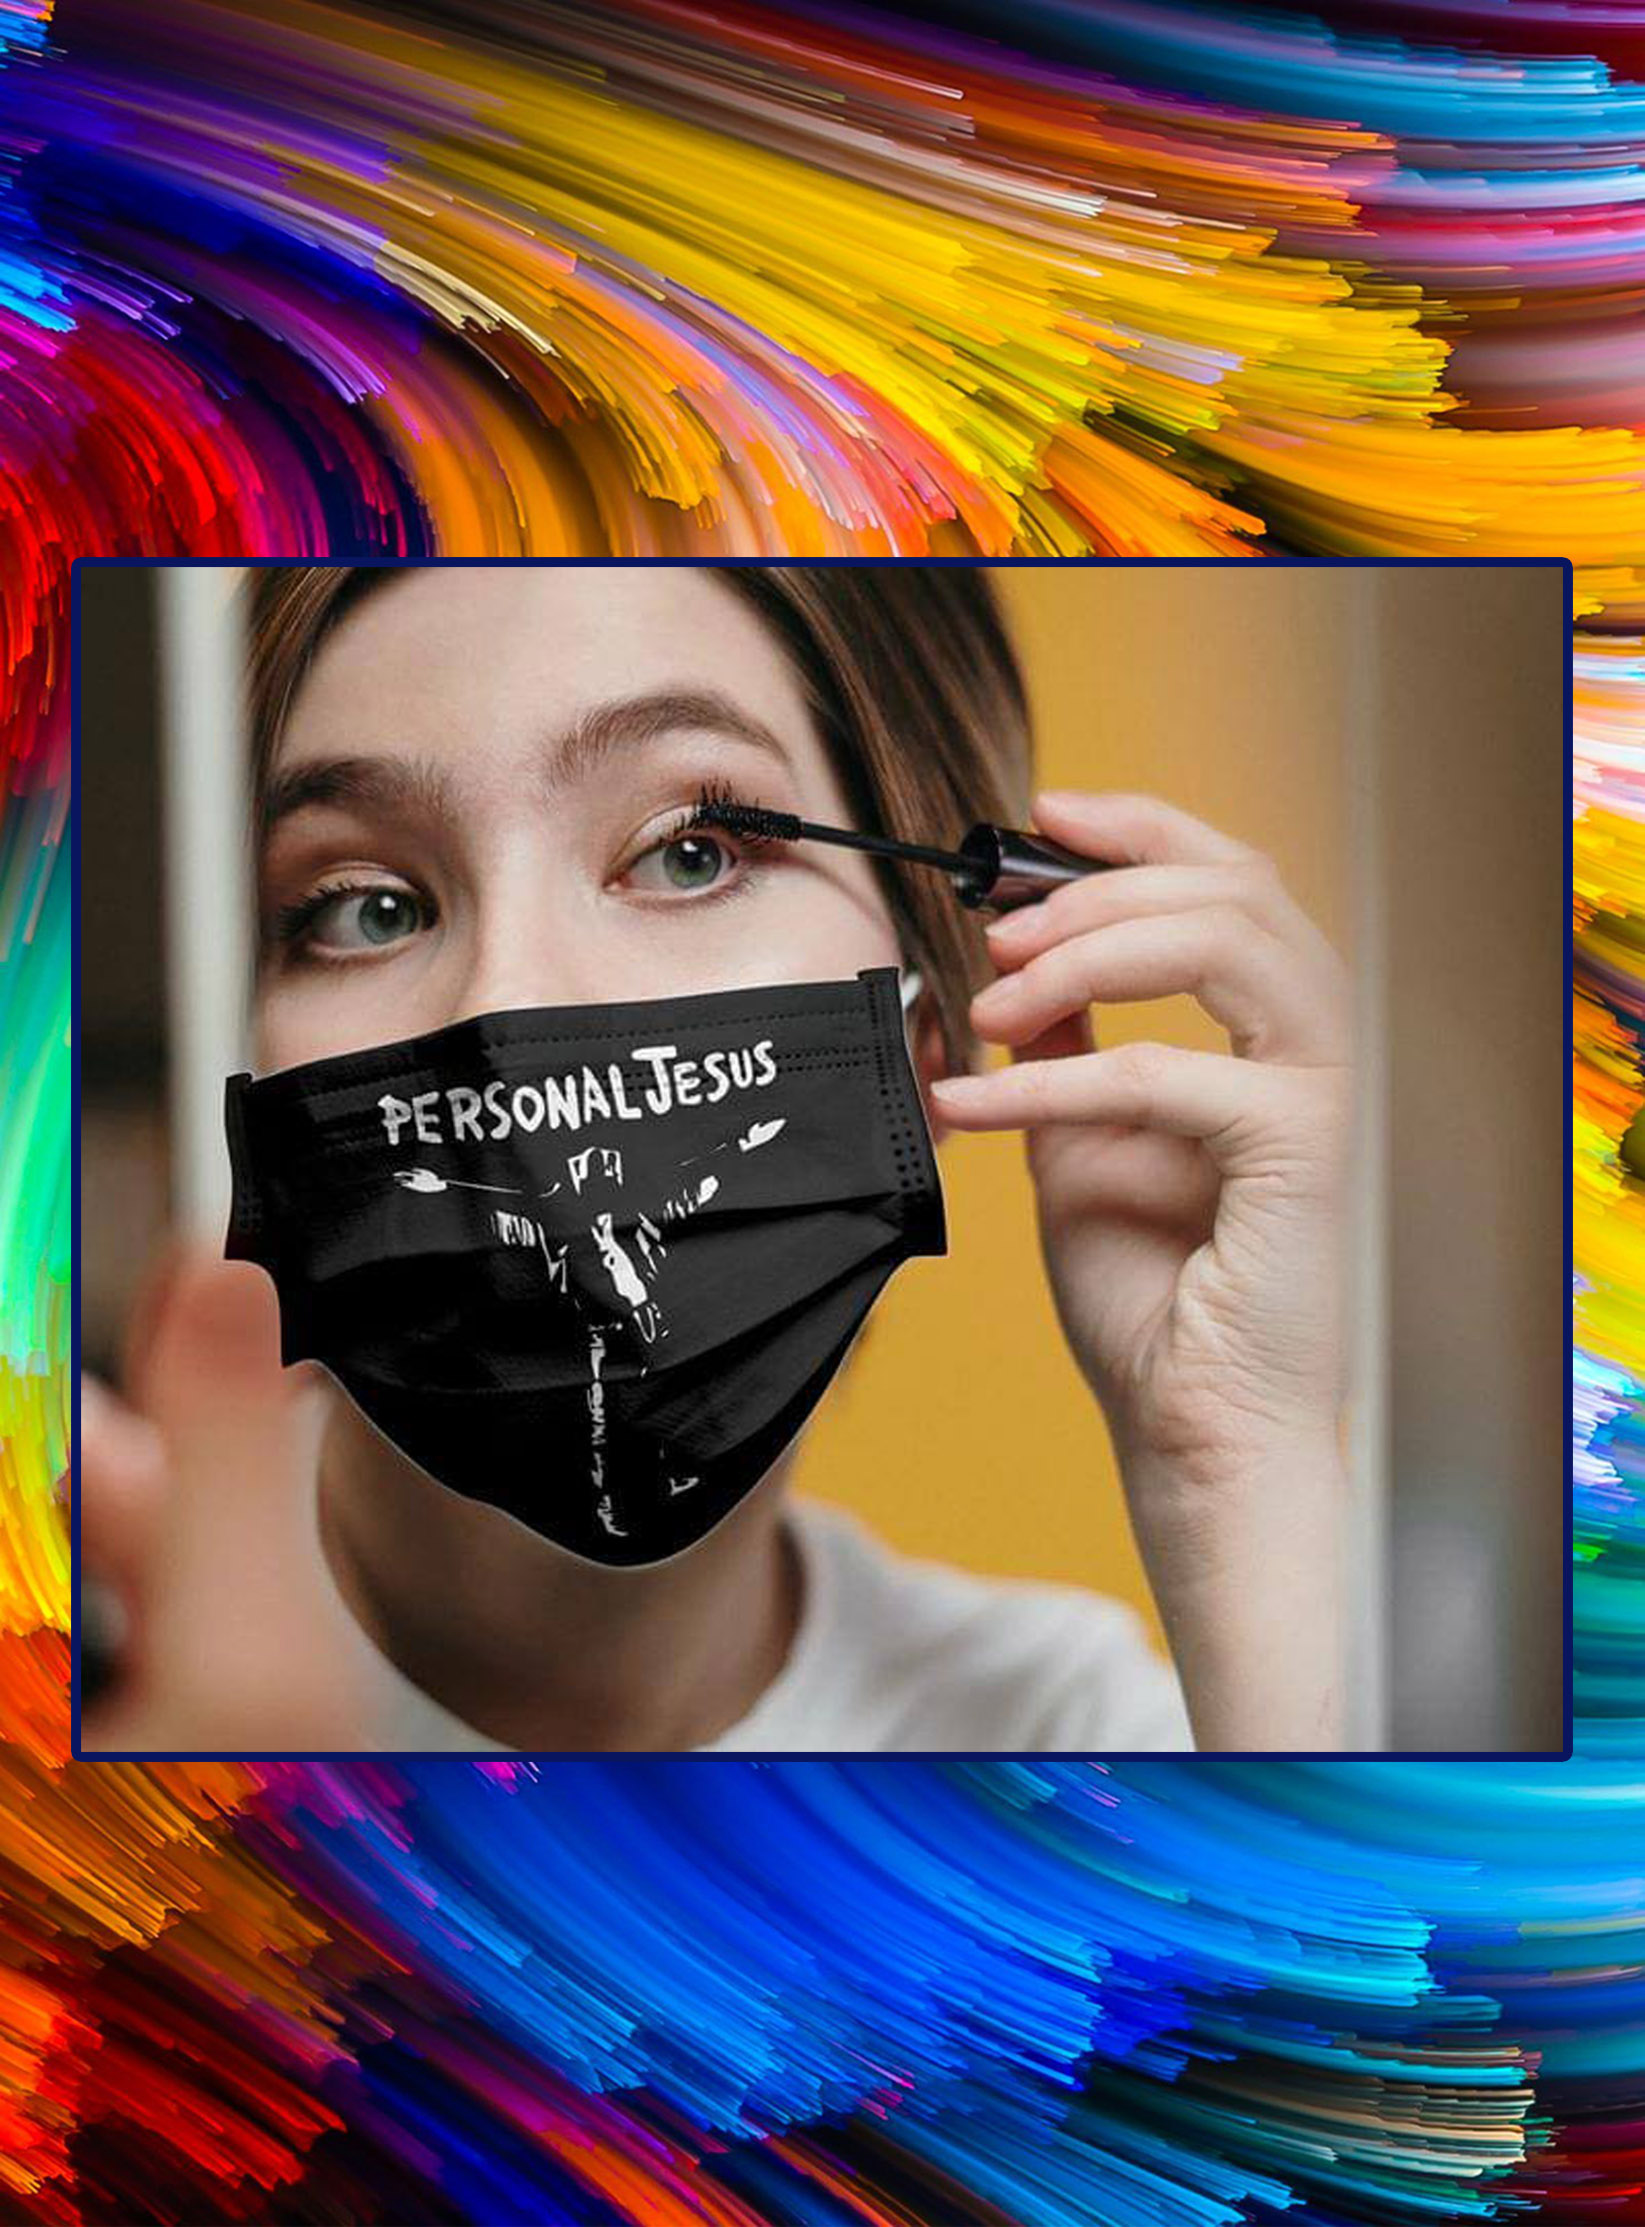 Personal jesus face mask - pic 1